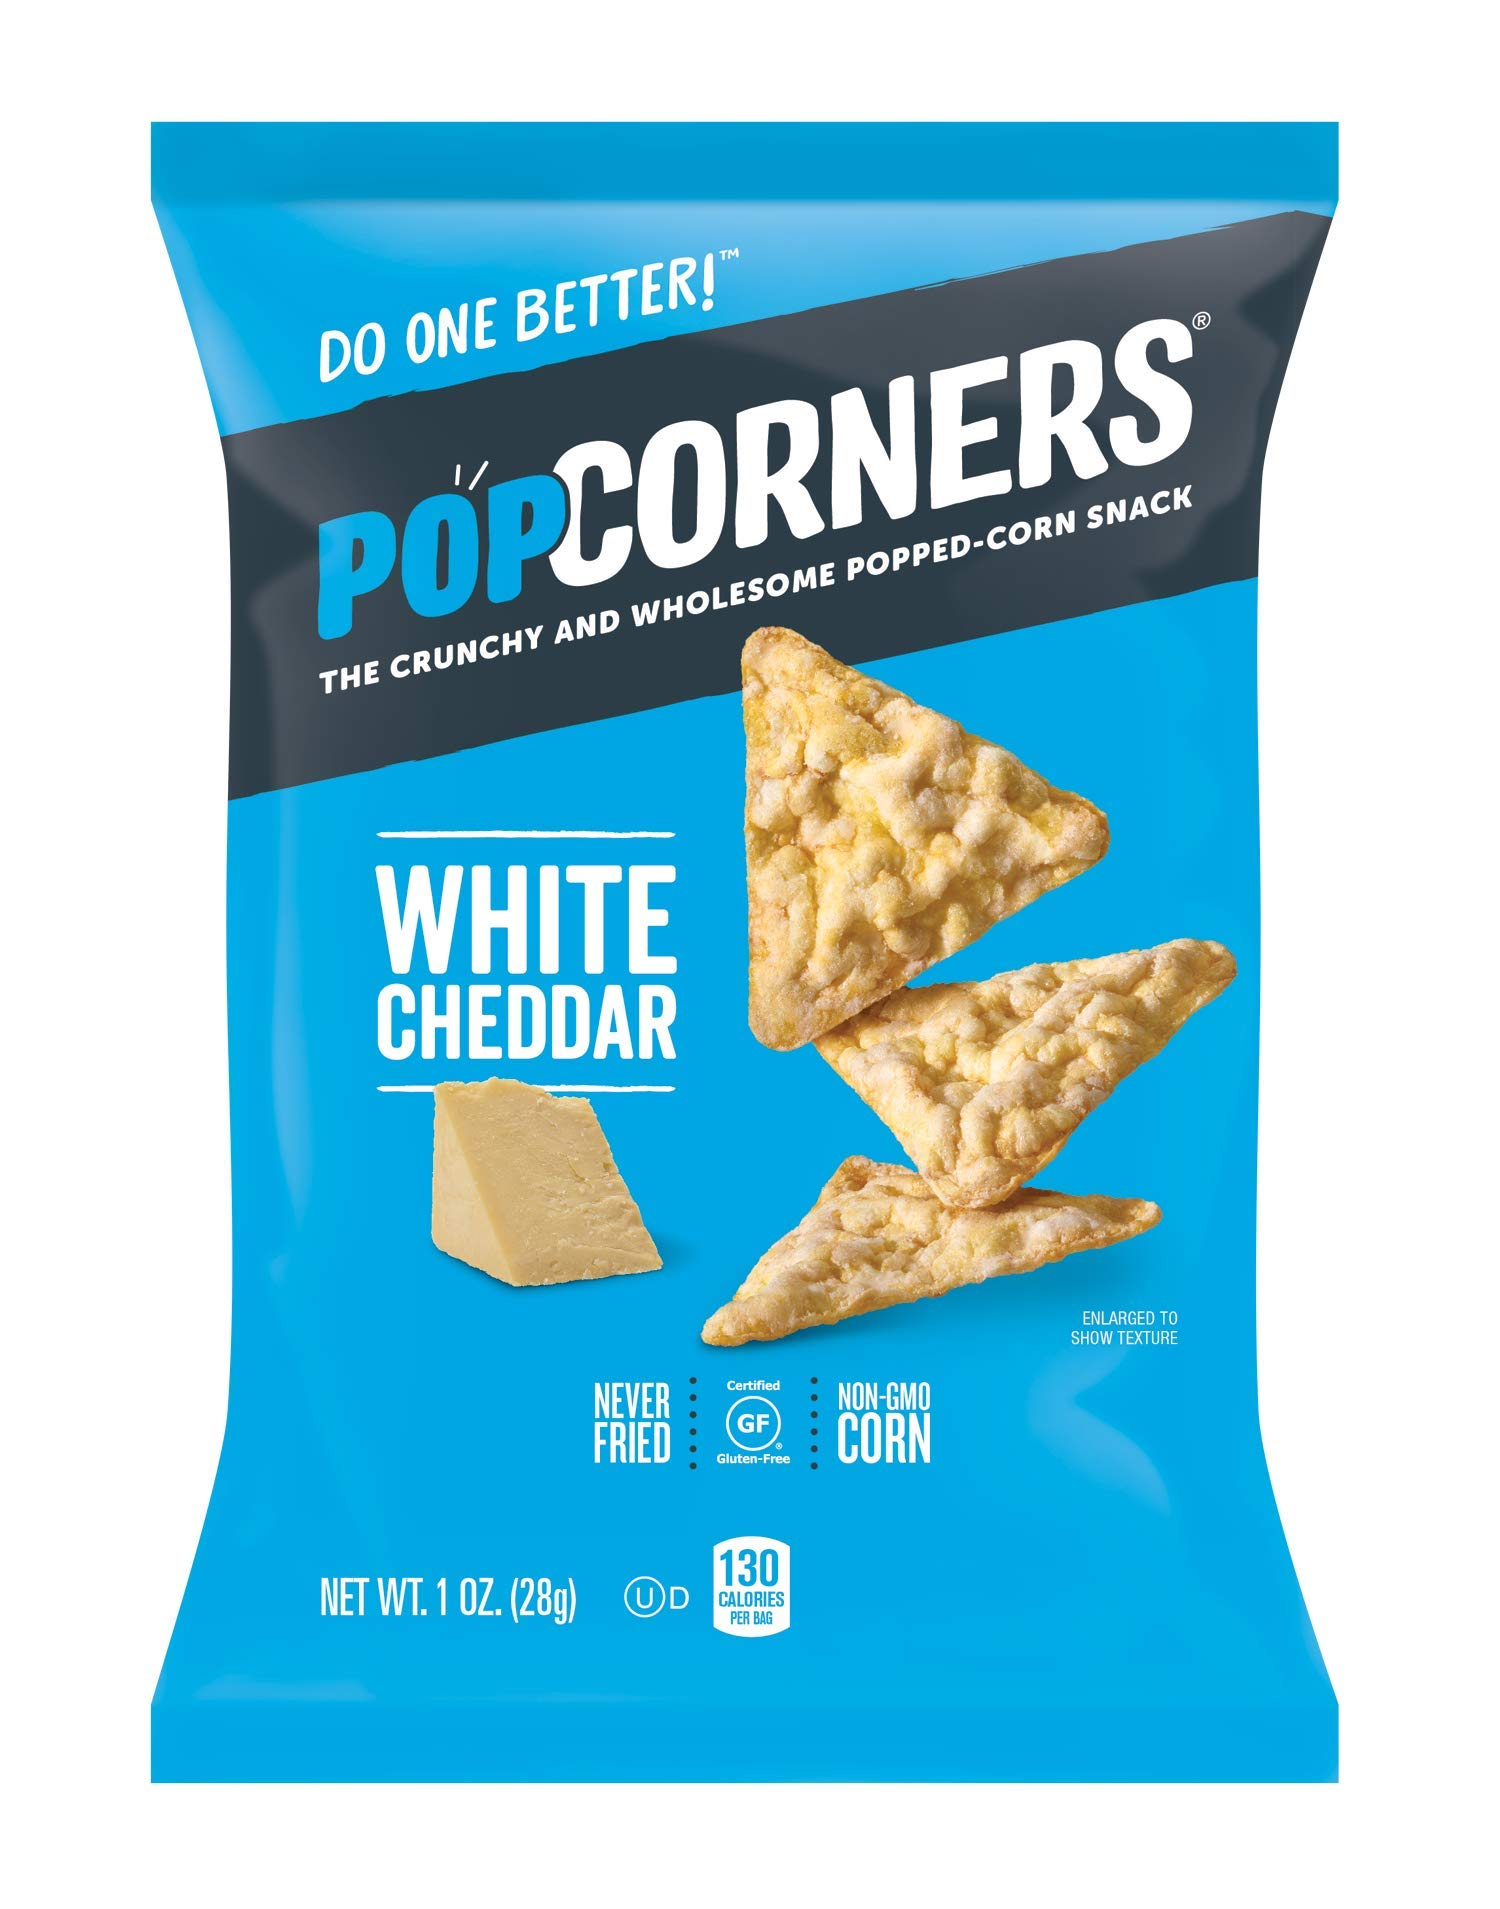 PopCorners Snacks Variety Pack | Gluten Free Snack Packs | Kettle Corn, White Cheddar, Sea Salt | (18 Pack, 1 oz Snack Bags) by Popcorners (Image #3)